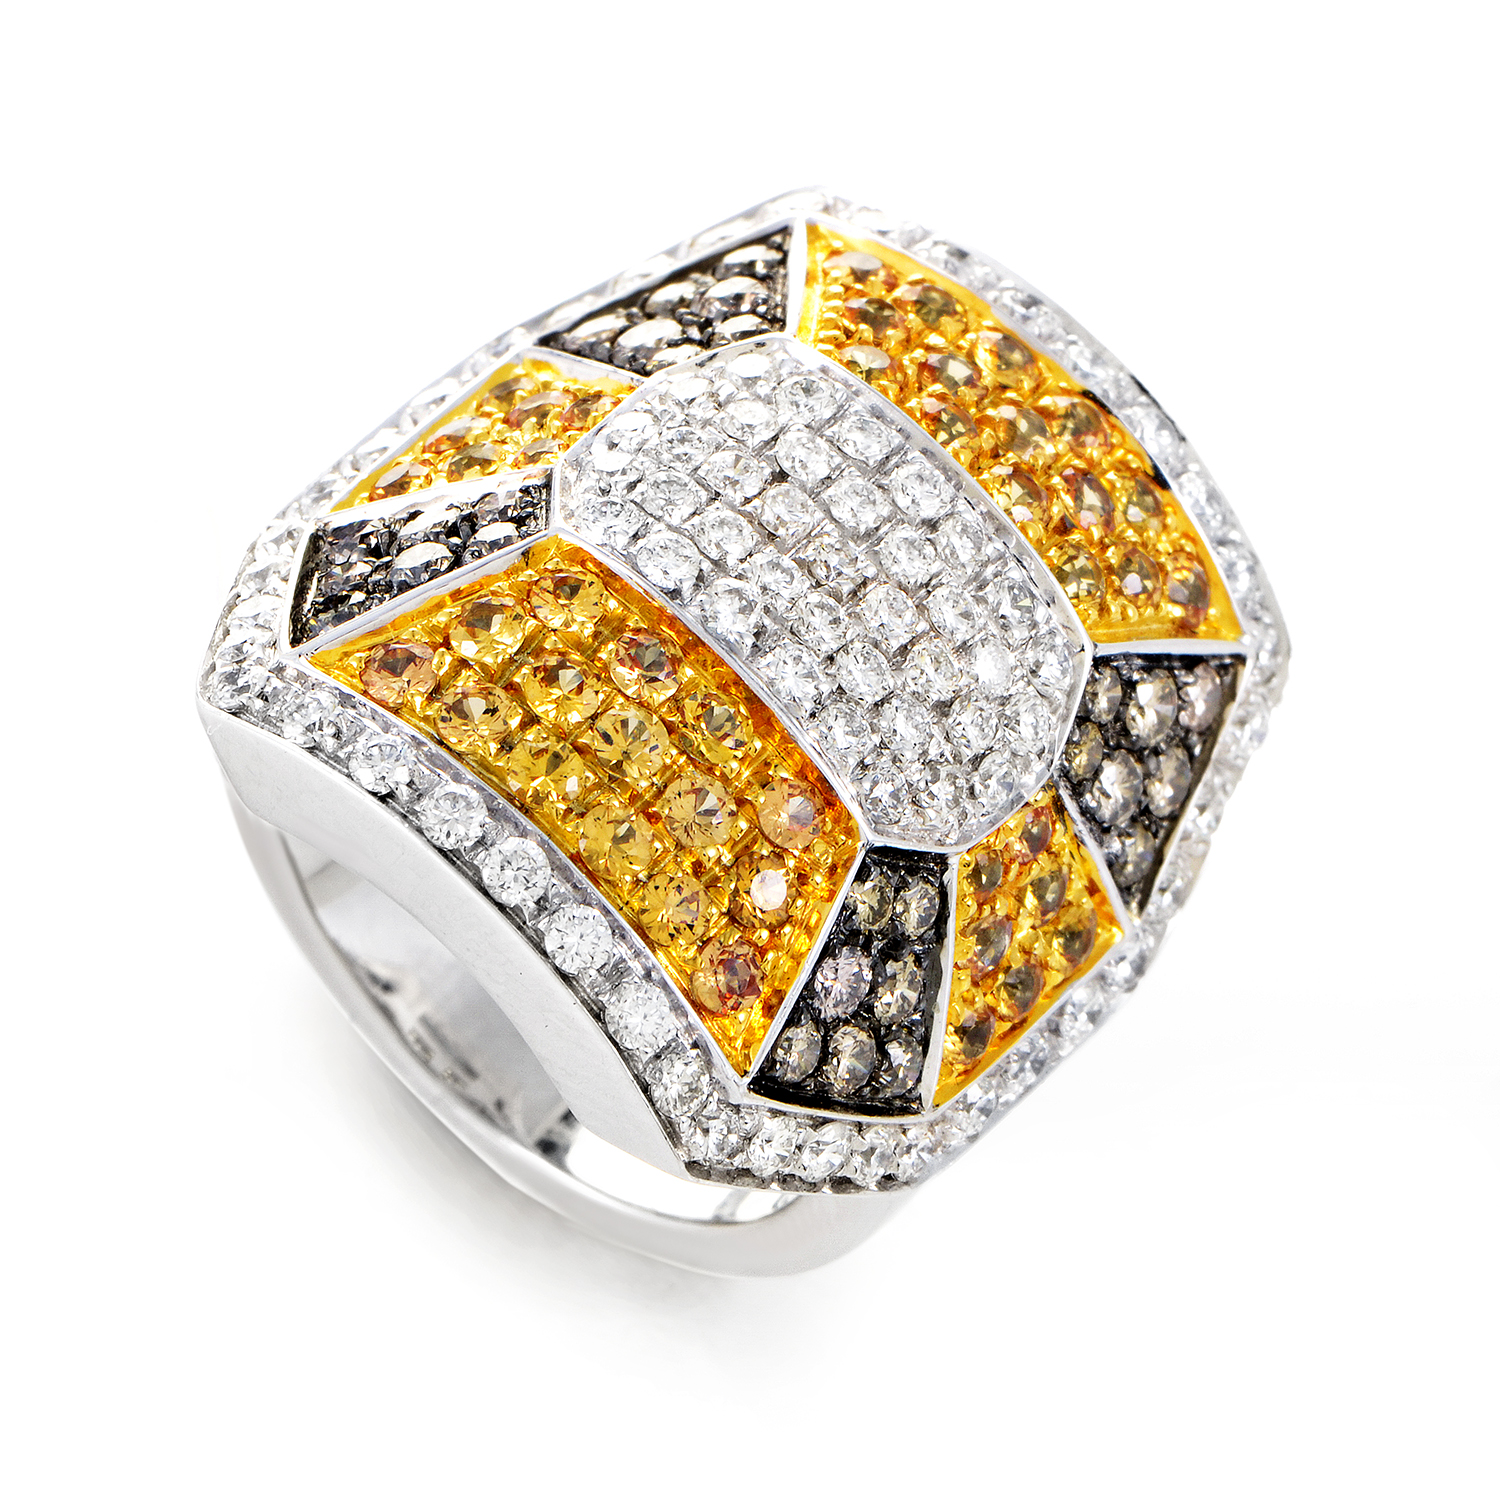 18K White Gold Diamond & Yellow Sapphire Ring